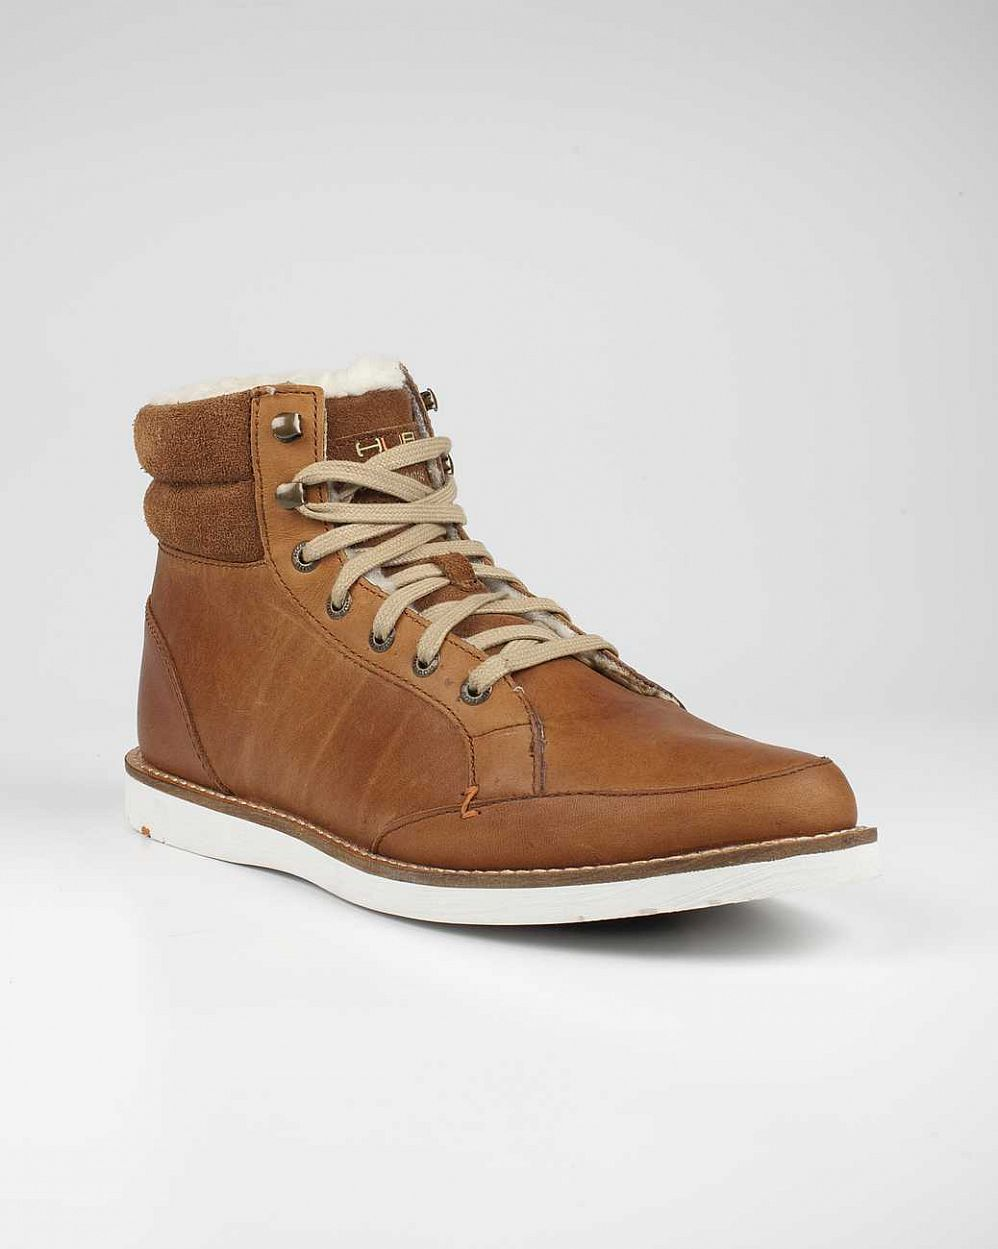 купить Ботинки Hubfootwear Wolsley Wool Leather not tumbl brown white в Москве